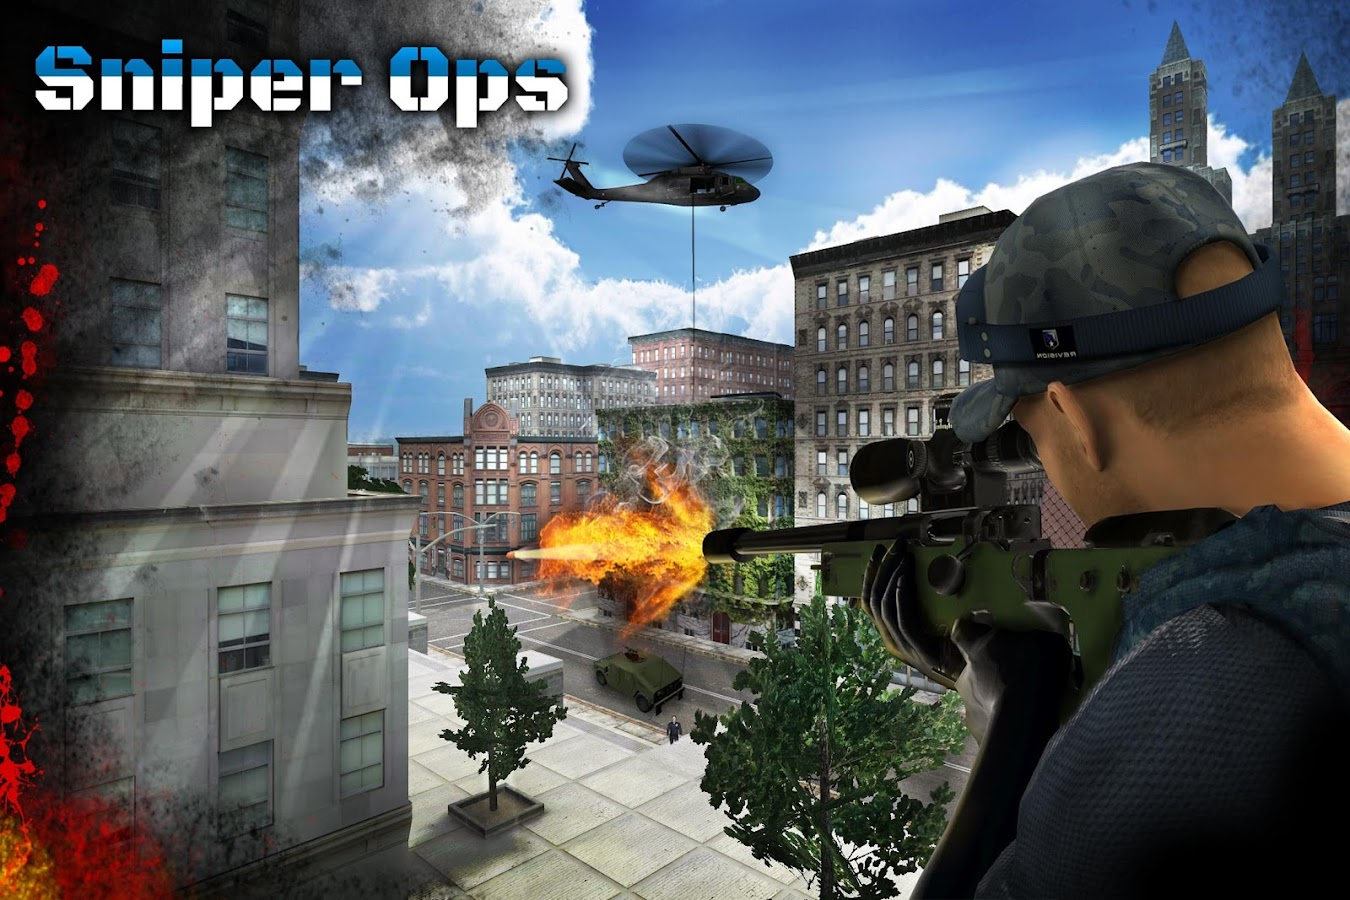 Sniper Ops - 3D Shooting Game Screenshot 7